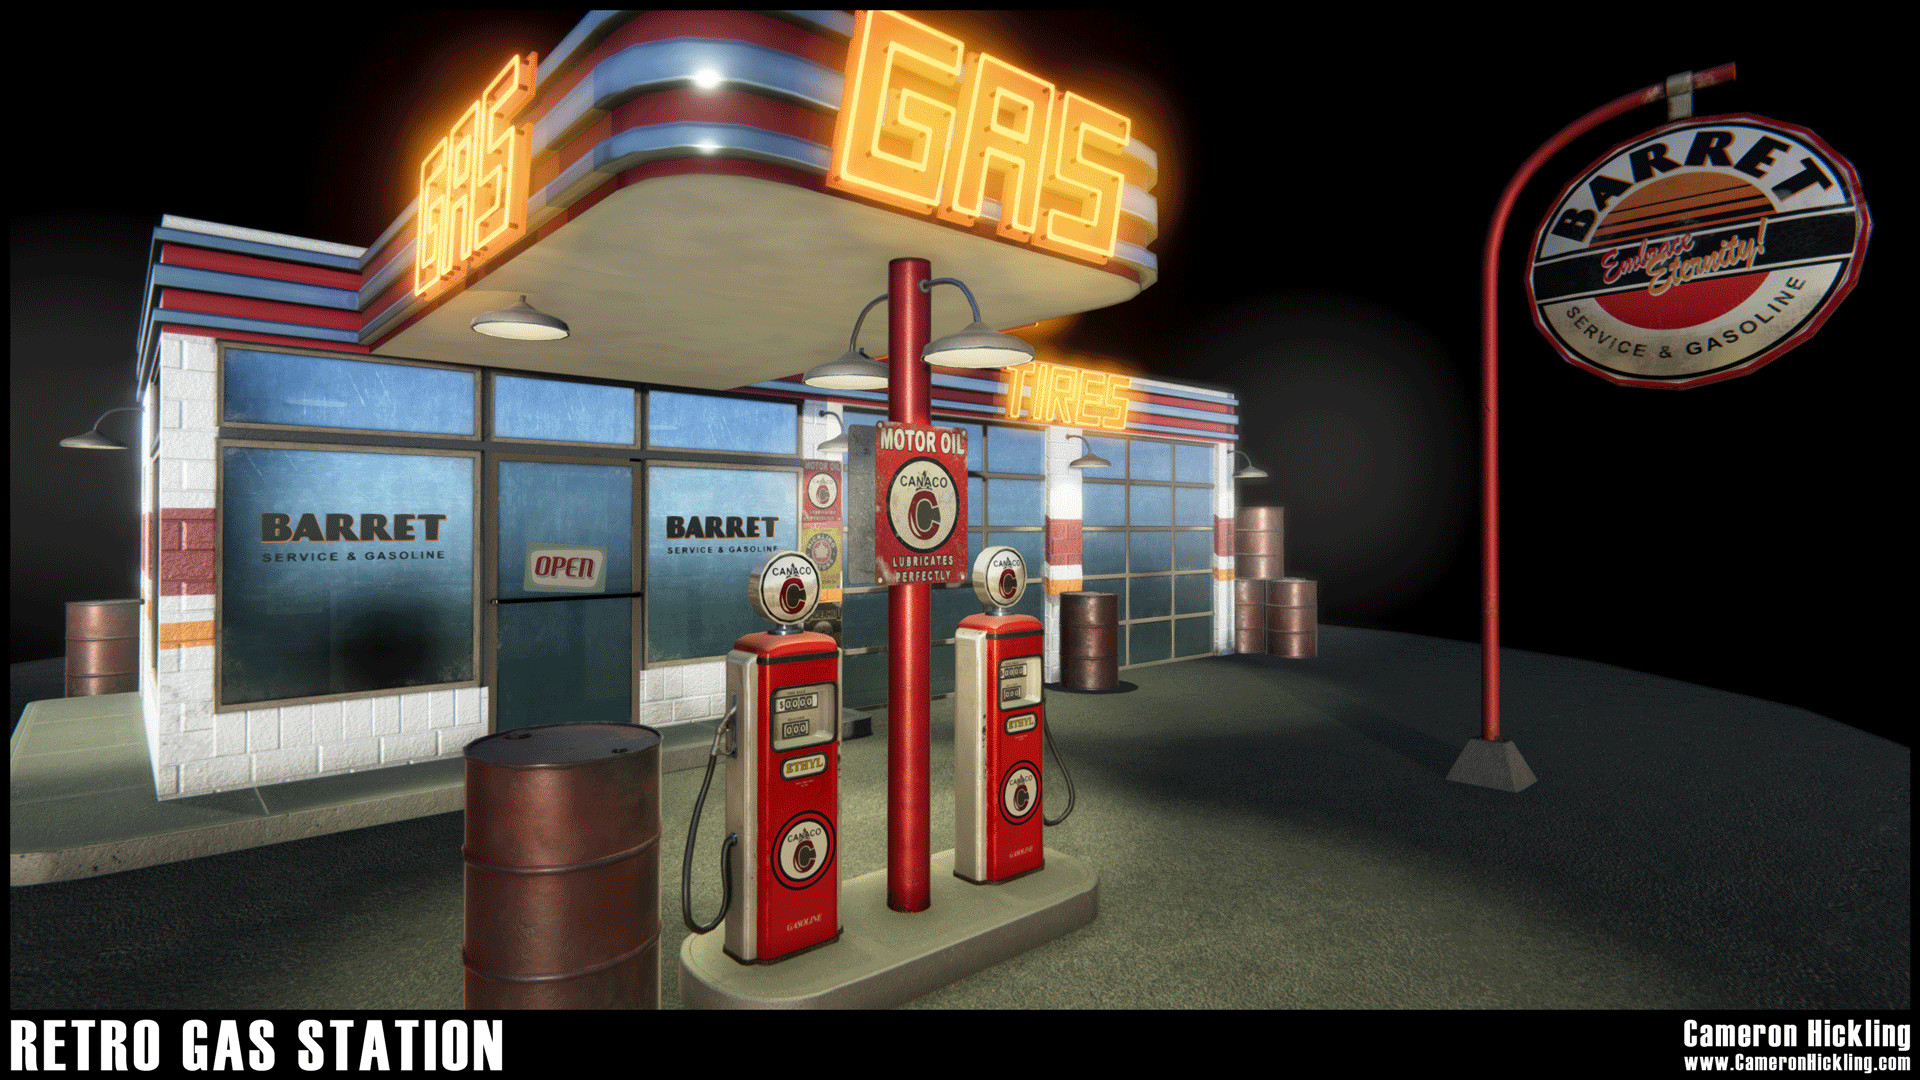 Gasoline at the gas station is massively underpowered 74